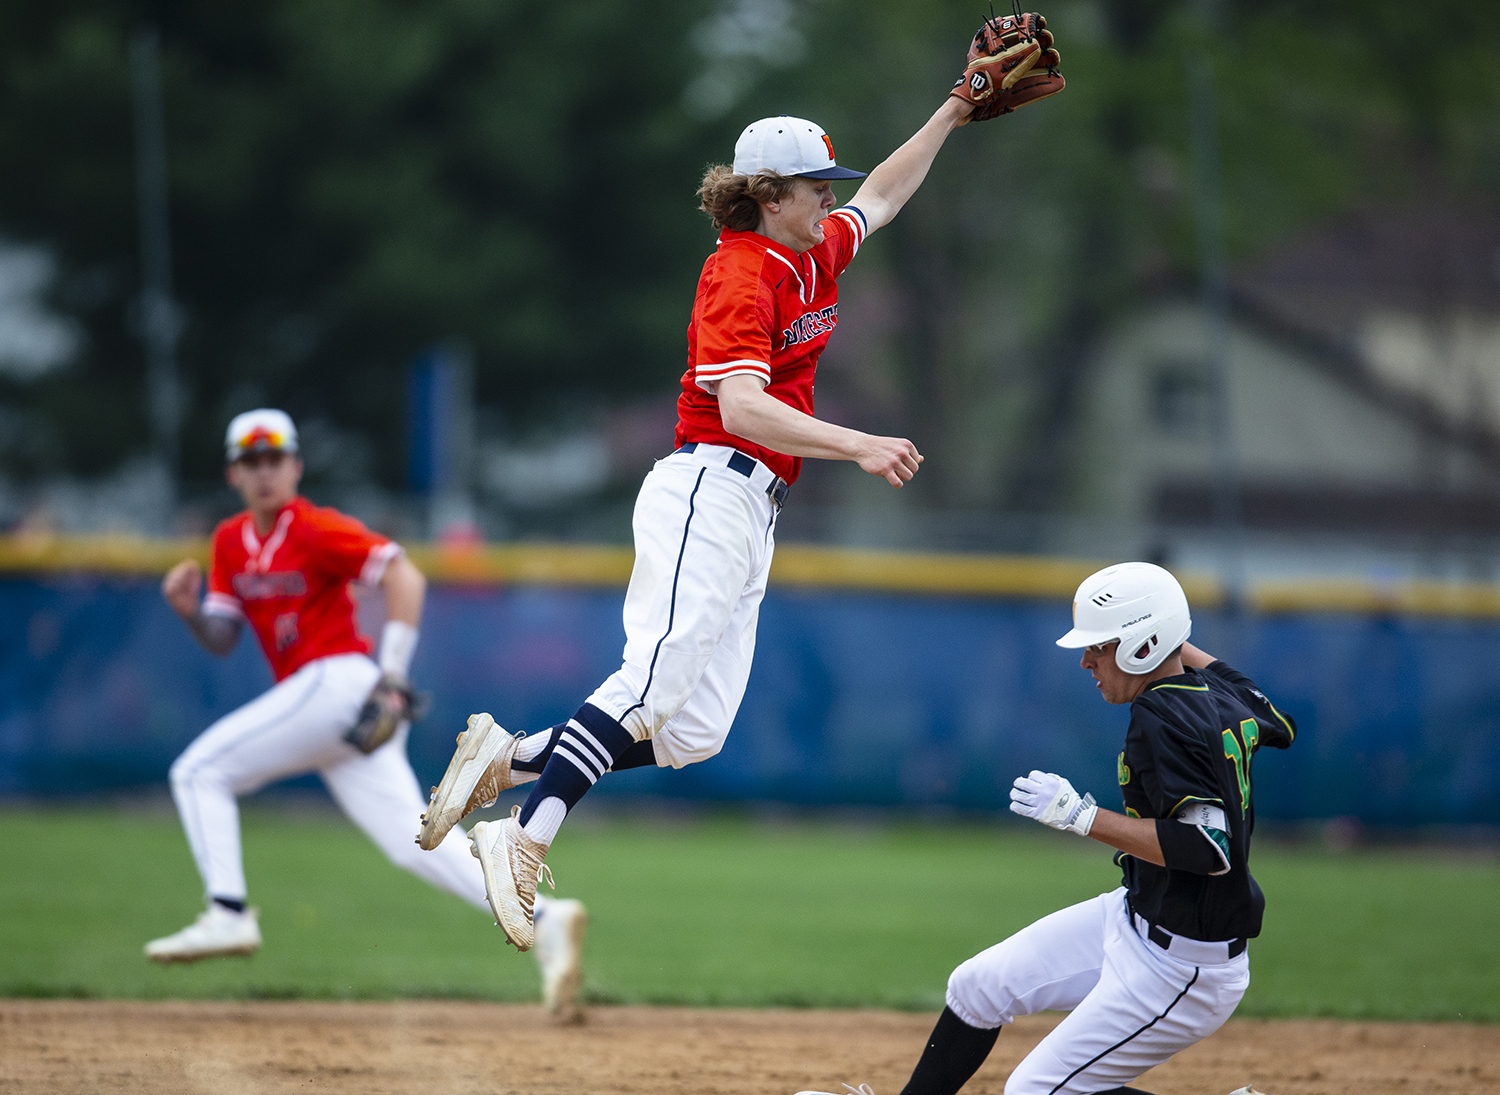 Rochester's Jayden Myren (3) leaps up trying to make a catch as Normal U-High's Jacob Moat (16) steals second base in the 3rd inning at Rochester High School, Tuesday, April 23, 2019, in Rochester, Ill. [Justin L. Fowler/The State Journal-Register]